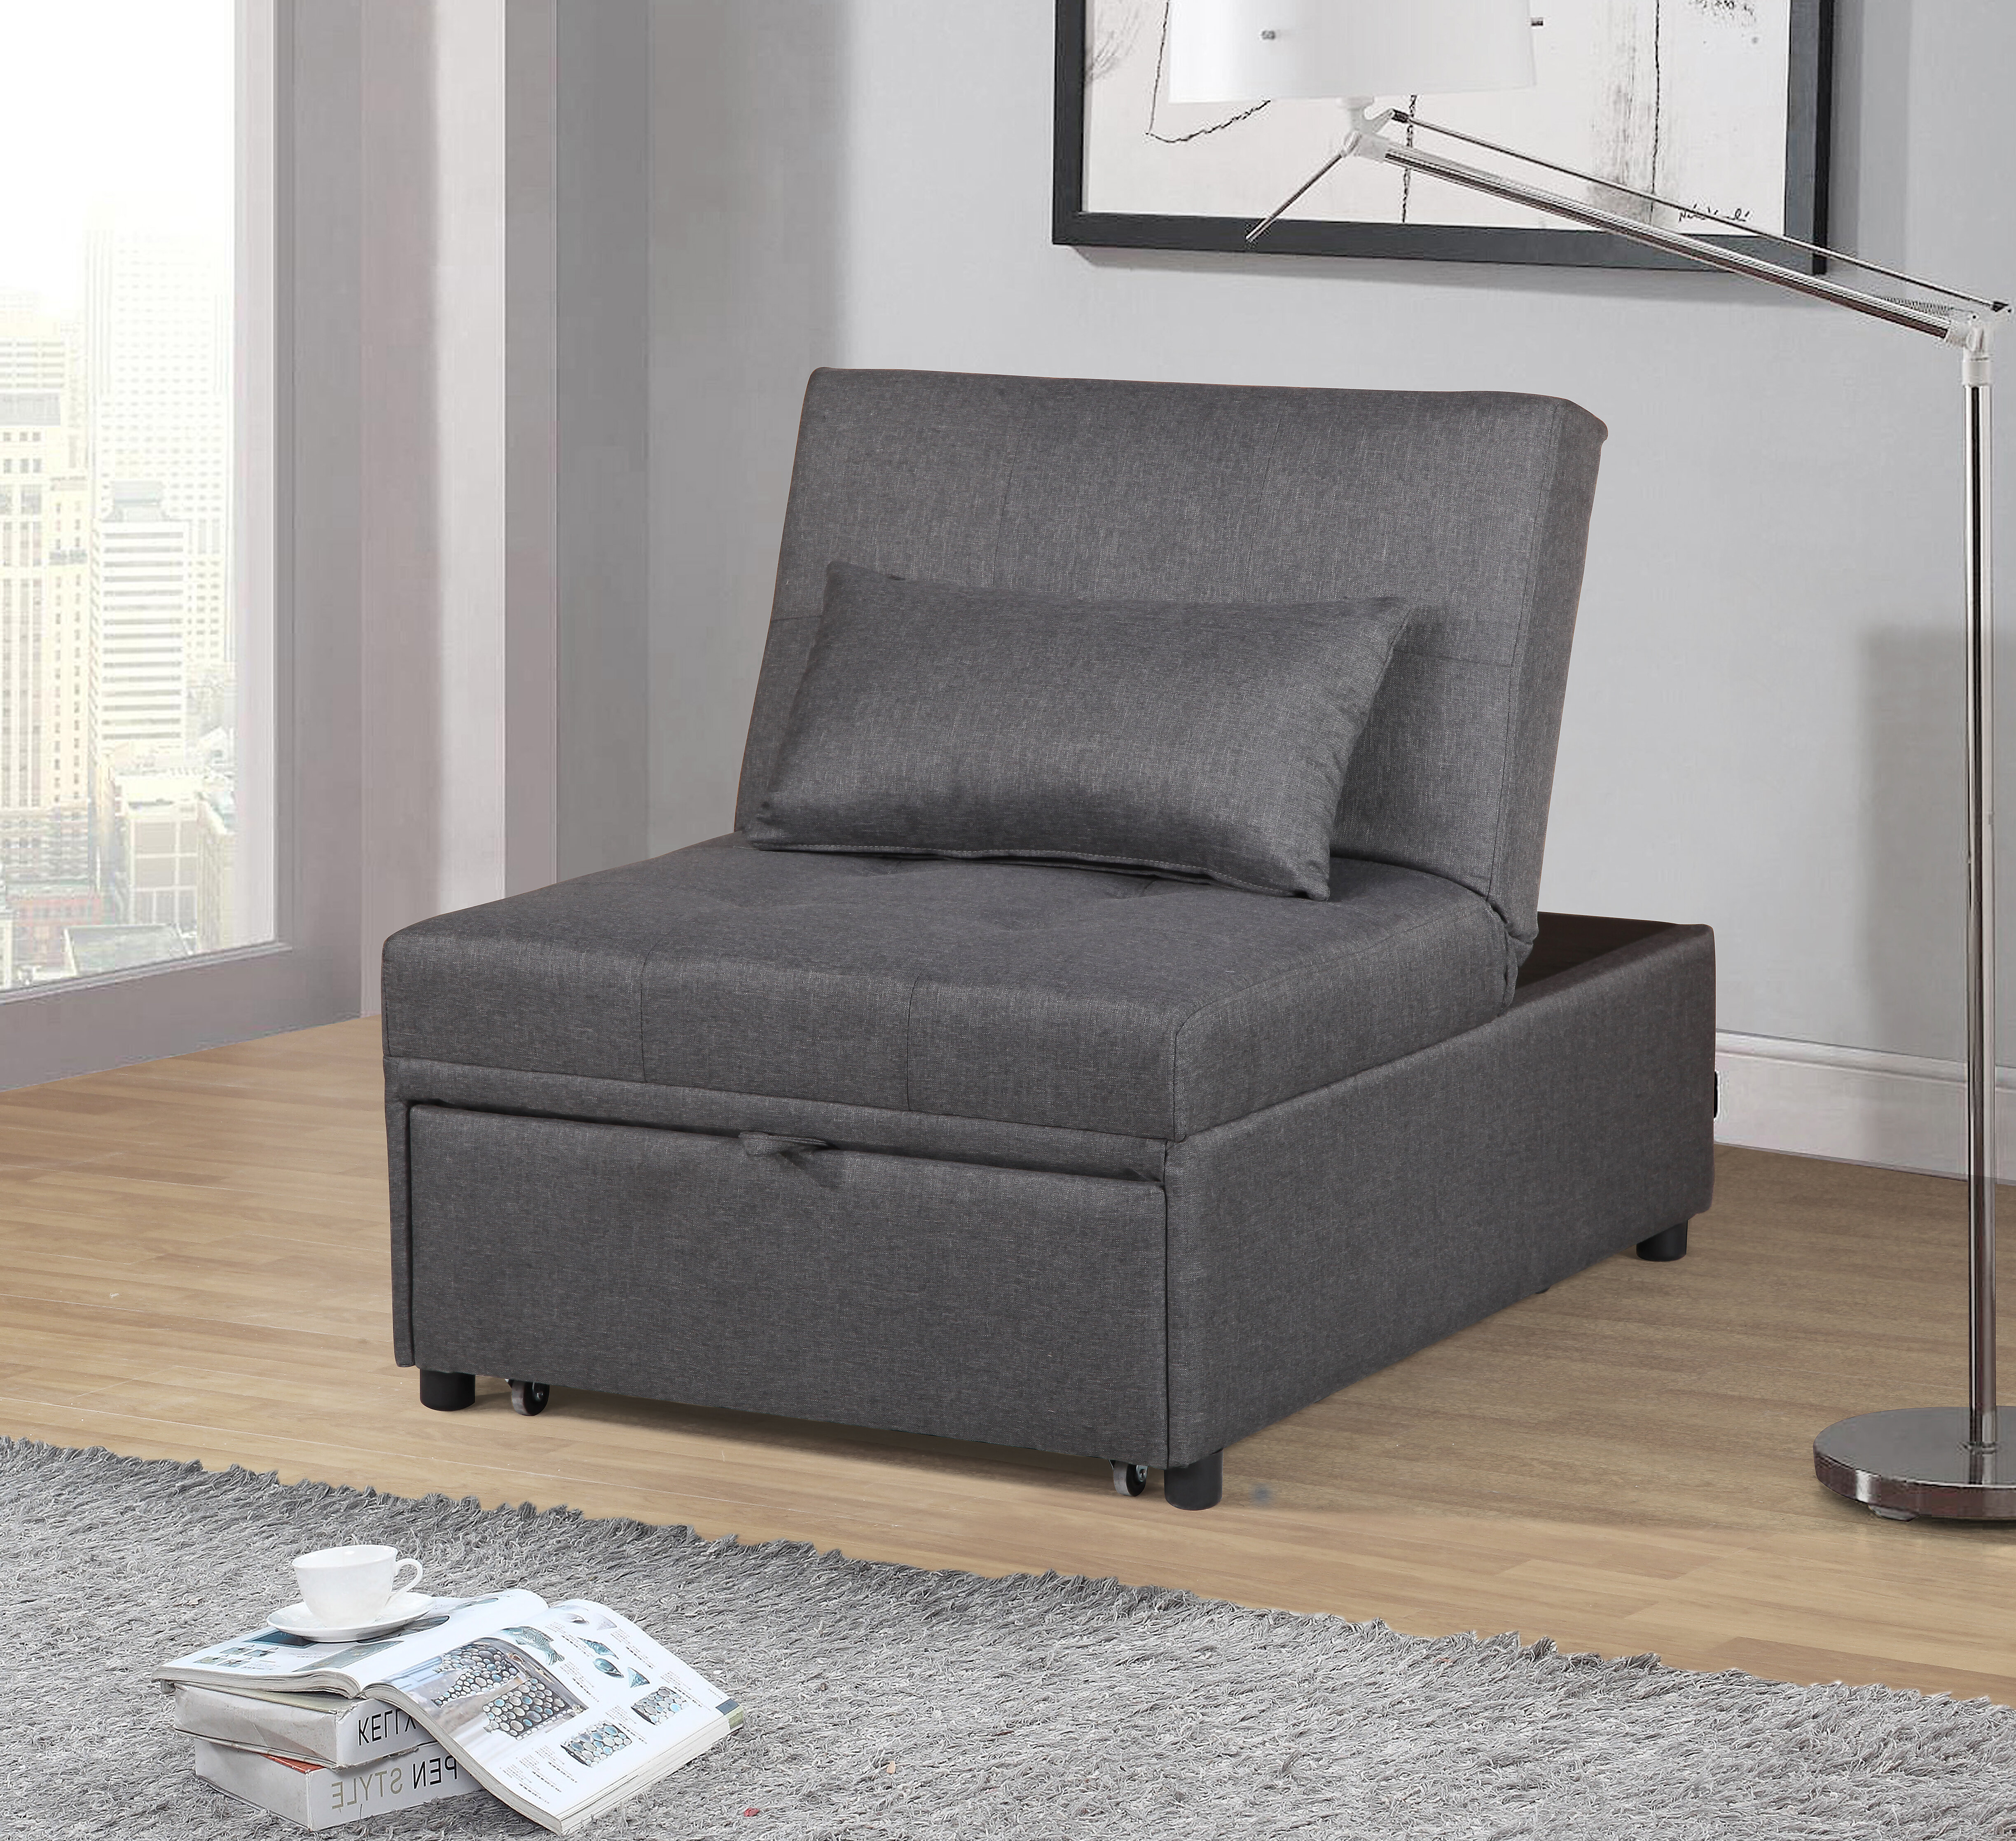 Tufted Back Futon Chair